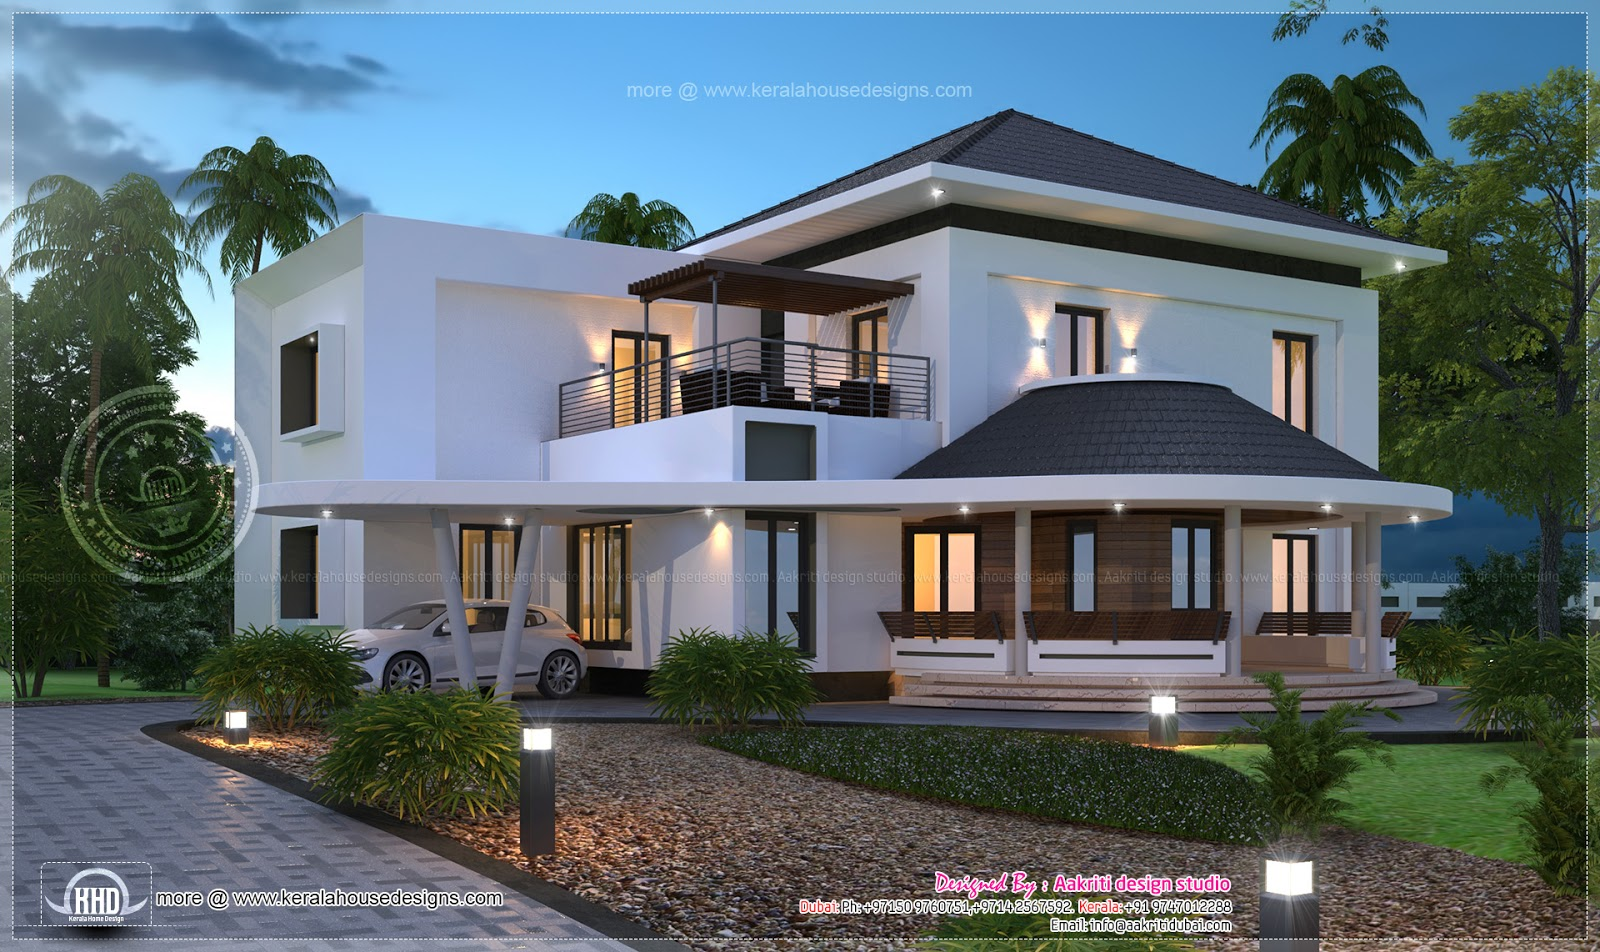 Beautiful 3200 sq ft modern villa exterior home kerala plans for Villa design plan india